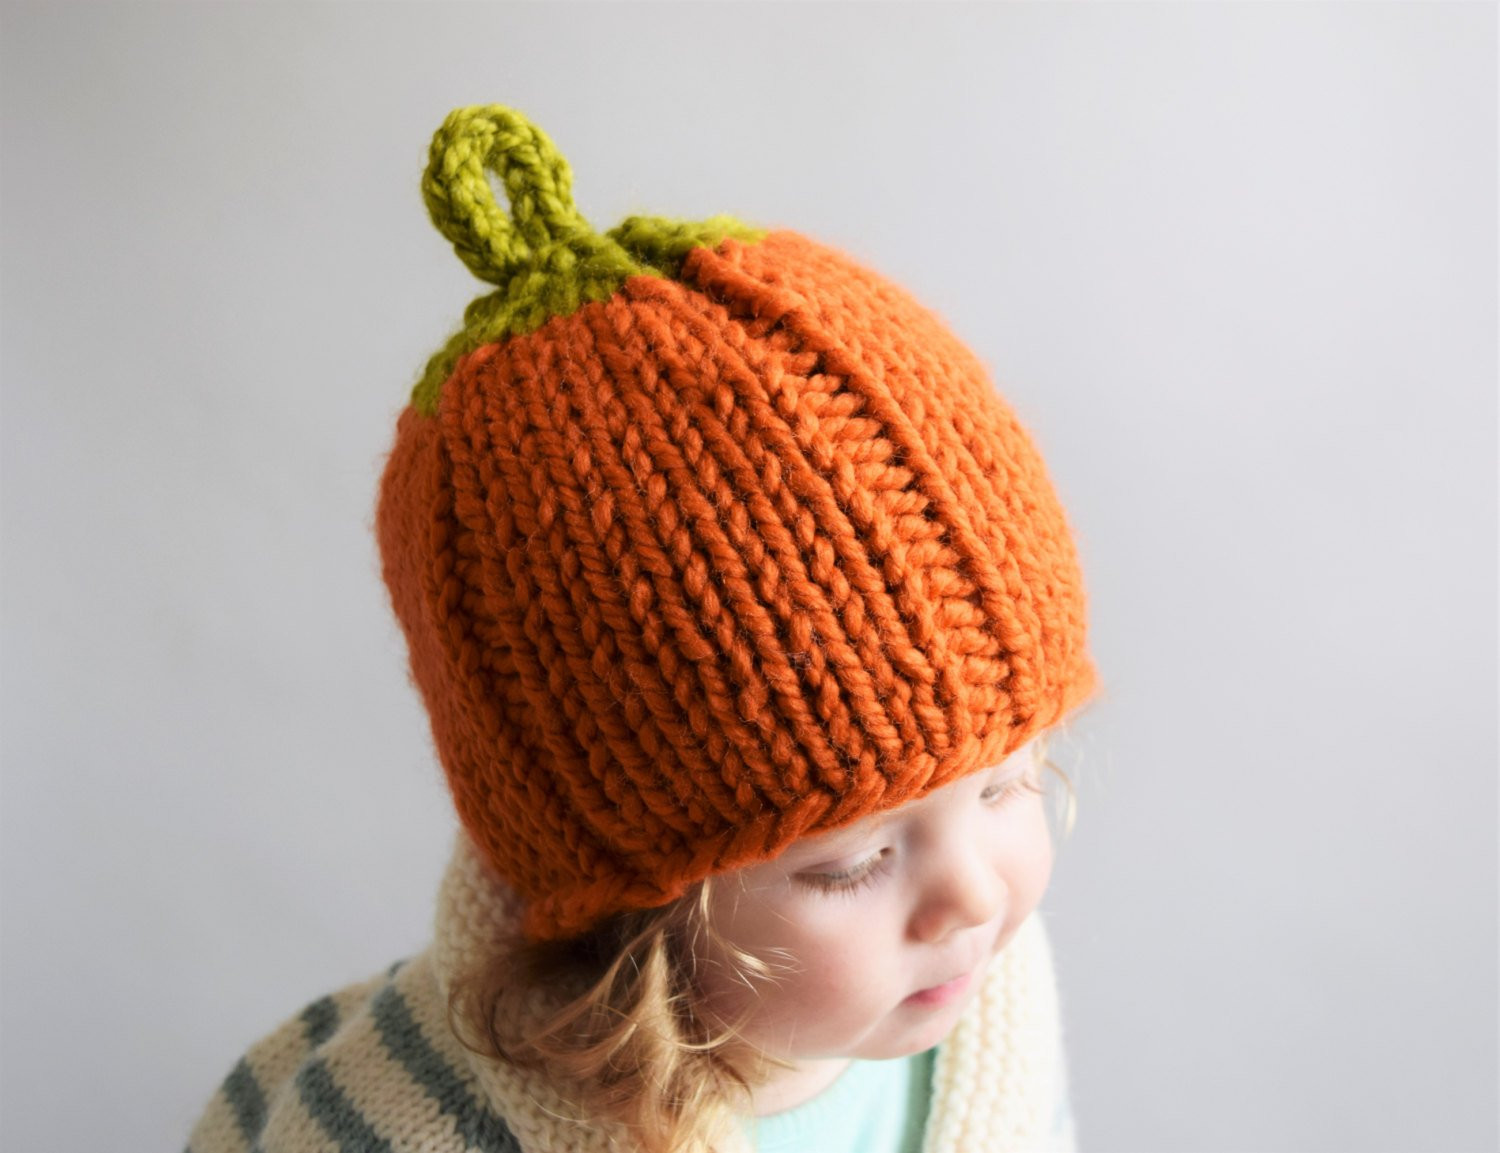 New Knit Pumpkin Hat Newborn Pumpkin Hat Baby by Knitted Pumpkin Hat Of Marvelous 40 Ideas Knitted Pumpkin Hat